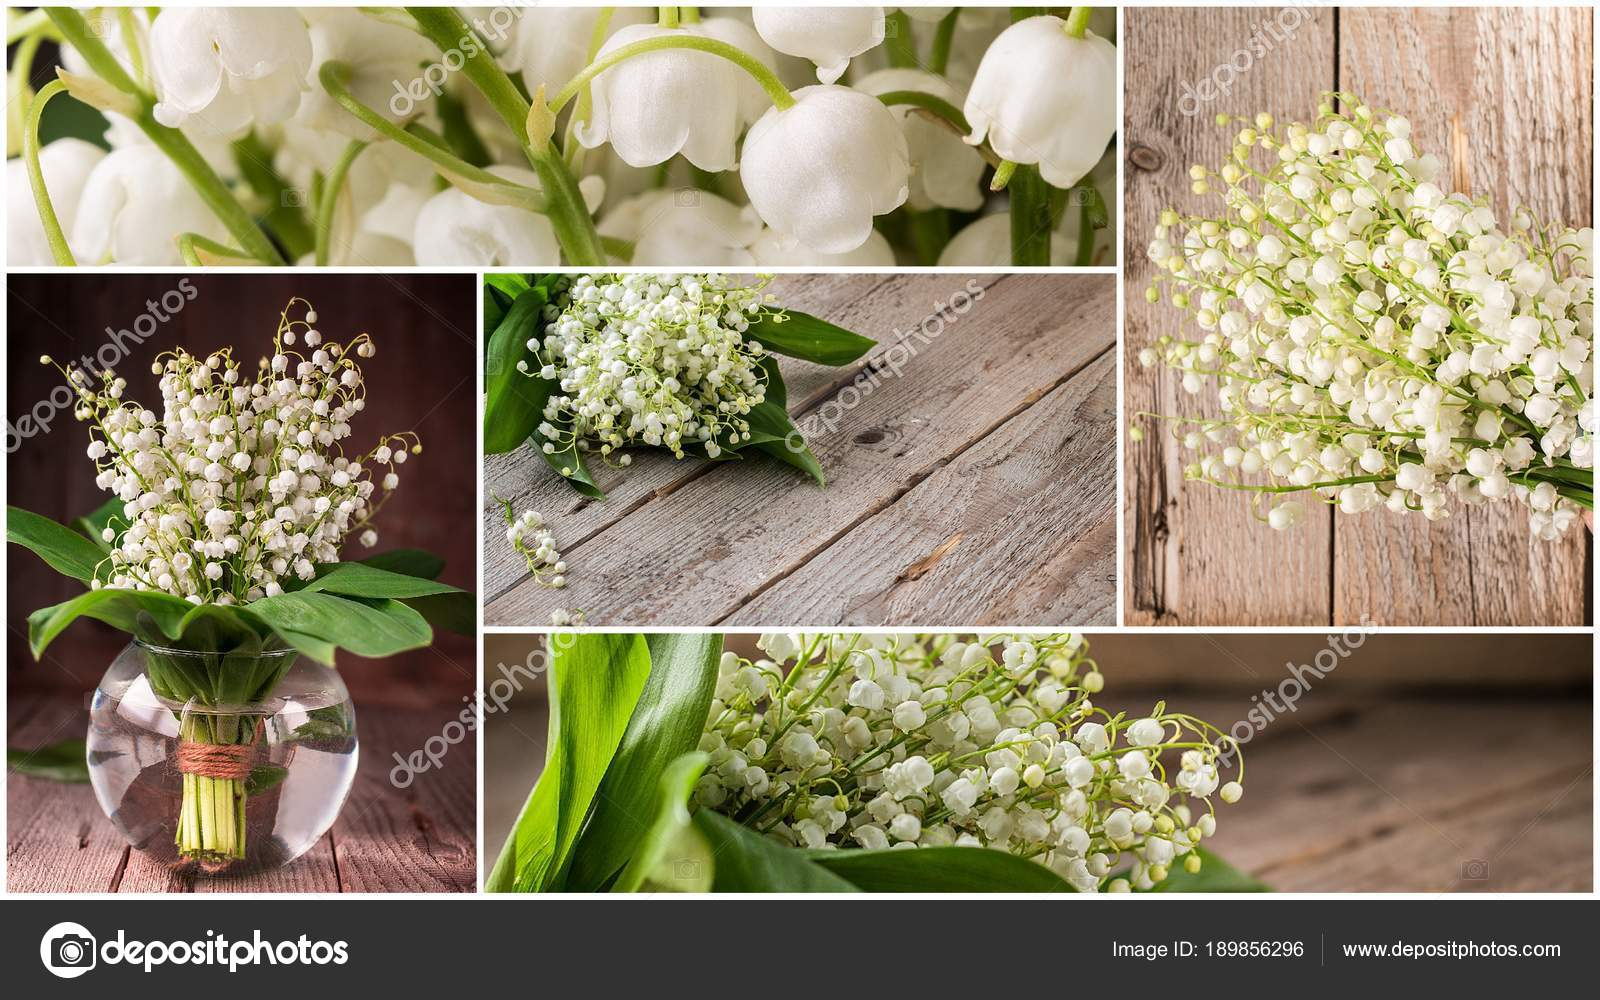 Collage of flowers lily of the valley stock photo mars58 189856296 collage of flowers lily of the valley stock photo izmirmasajfo Choice Image